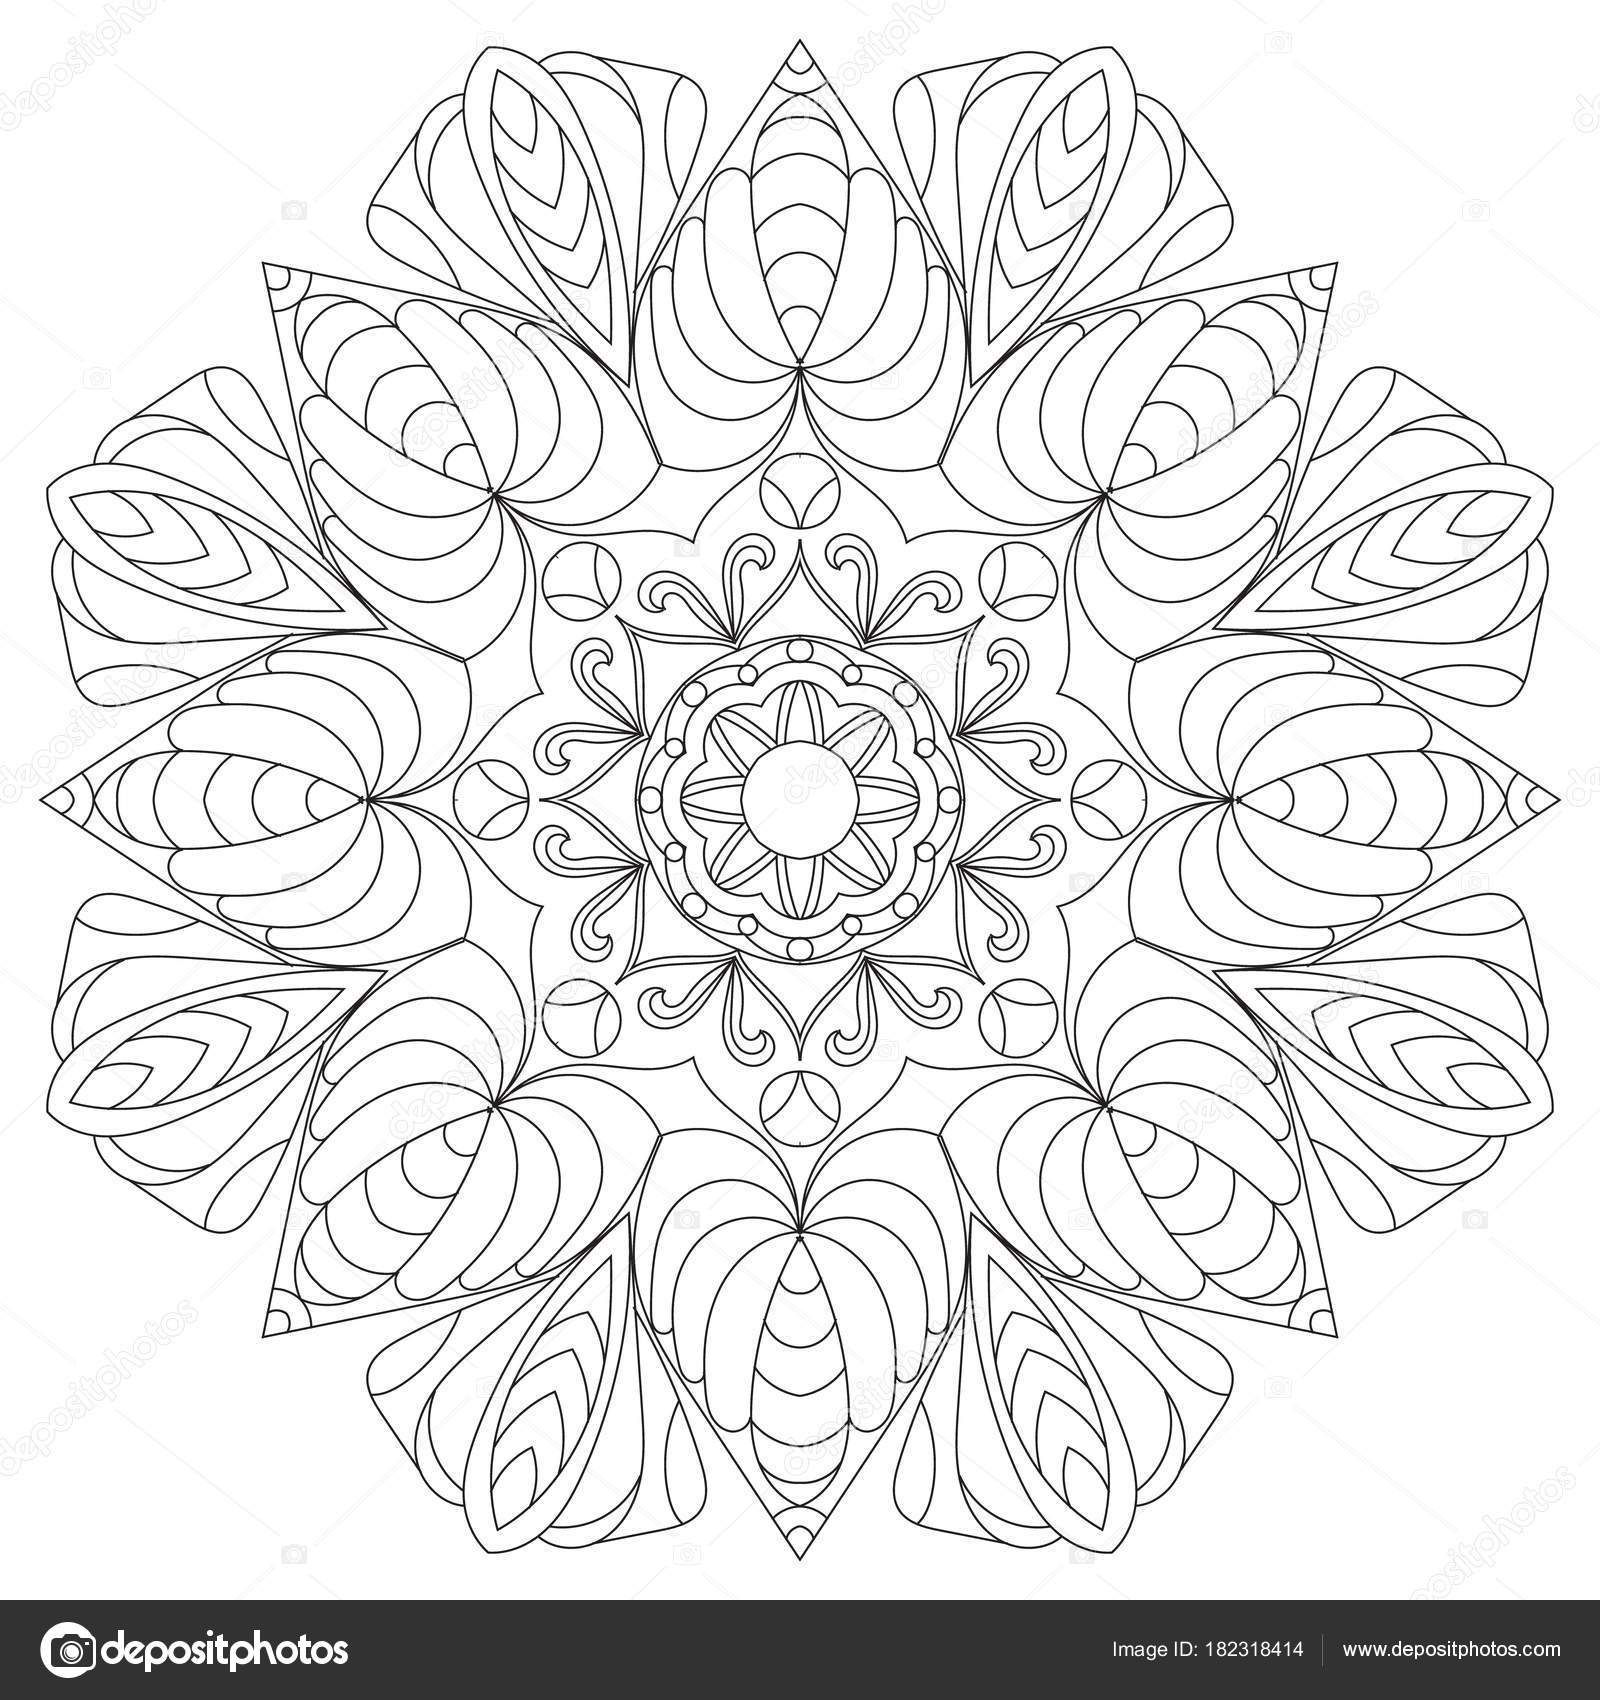 Flower Circular Mandala For Adults Coloring Book Page Design A